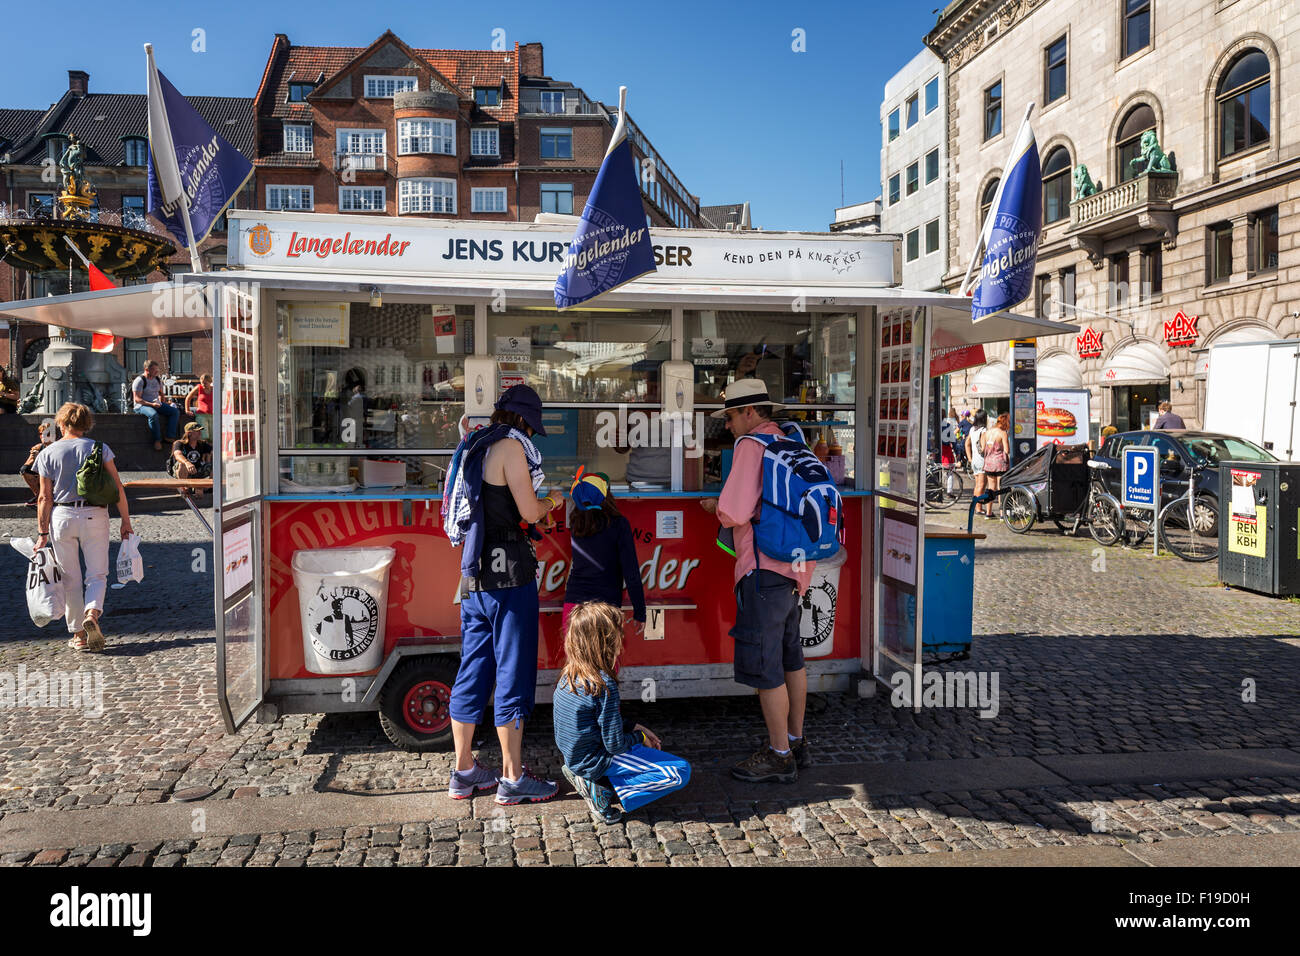 A typical and classic Danish pølsevogn (hot dog stand), on the main pedestrian street, Stroeget (Strøget) - Stock Image